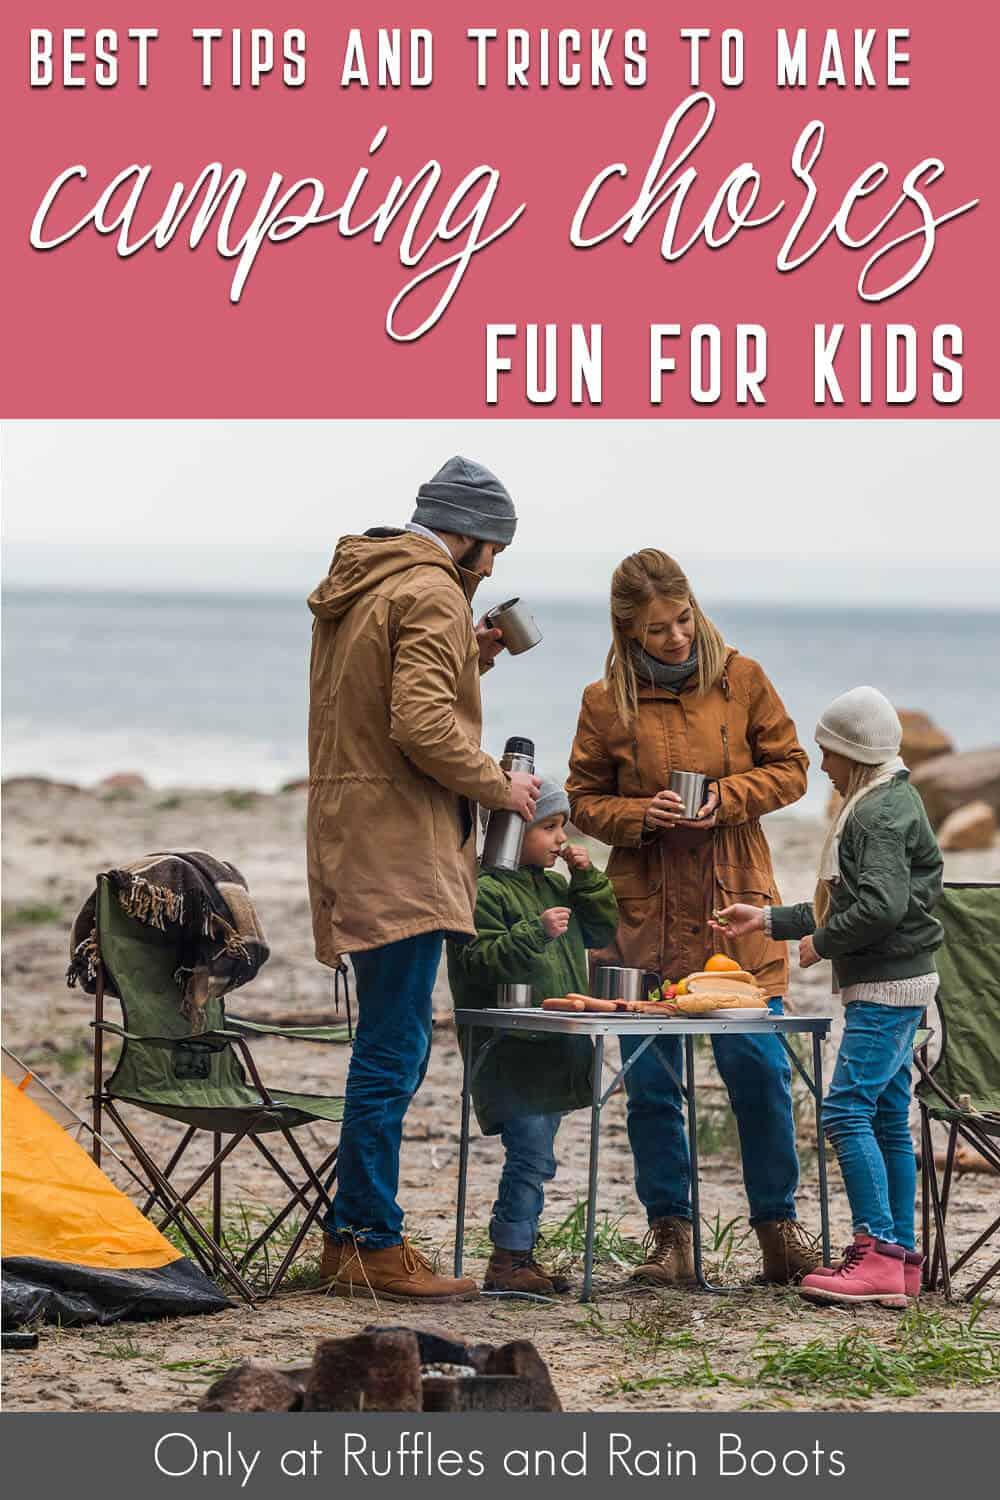 kids camping chores with text which reads best tips and tricks to make camping chores fun for kids